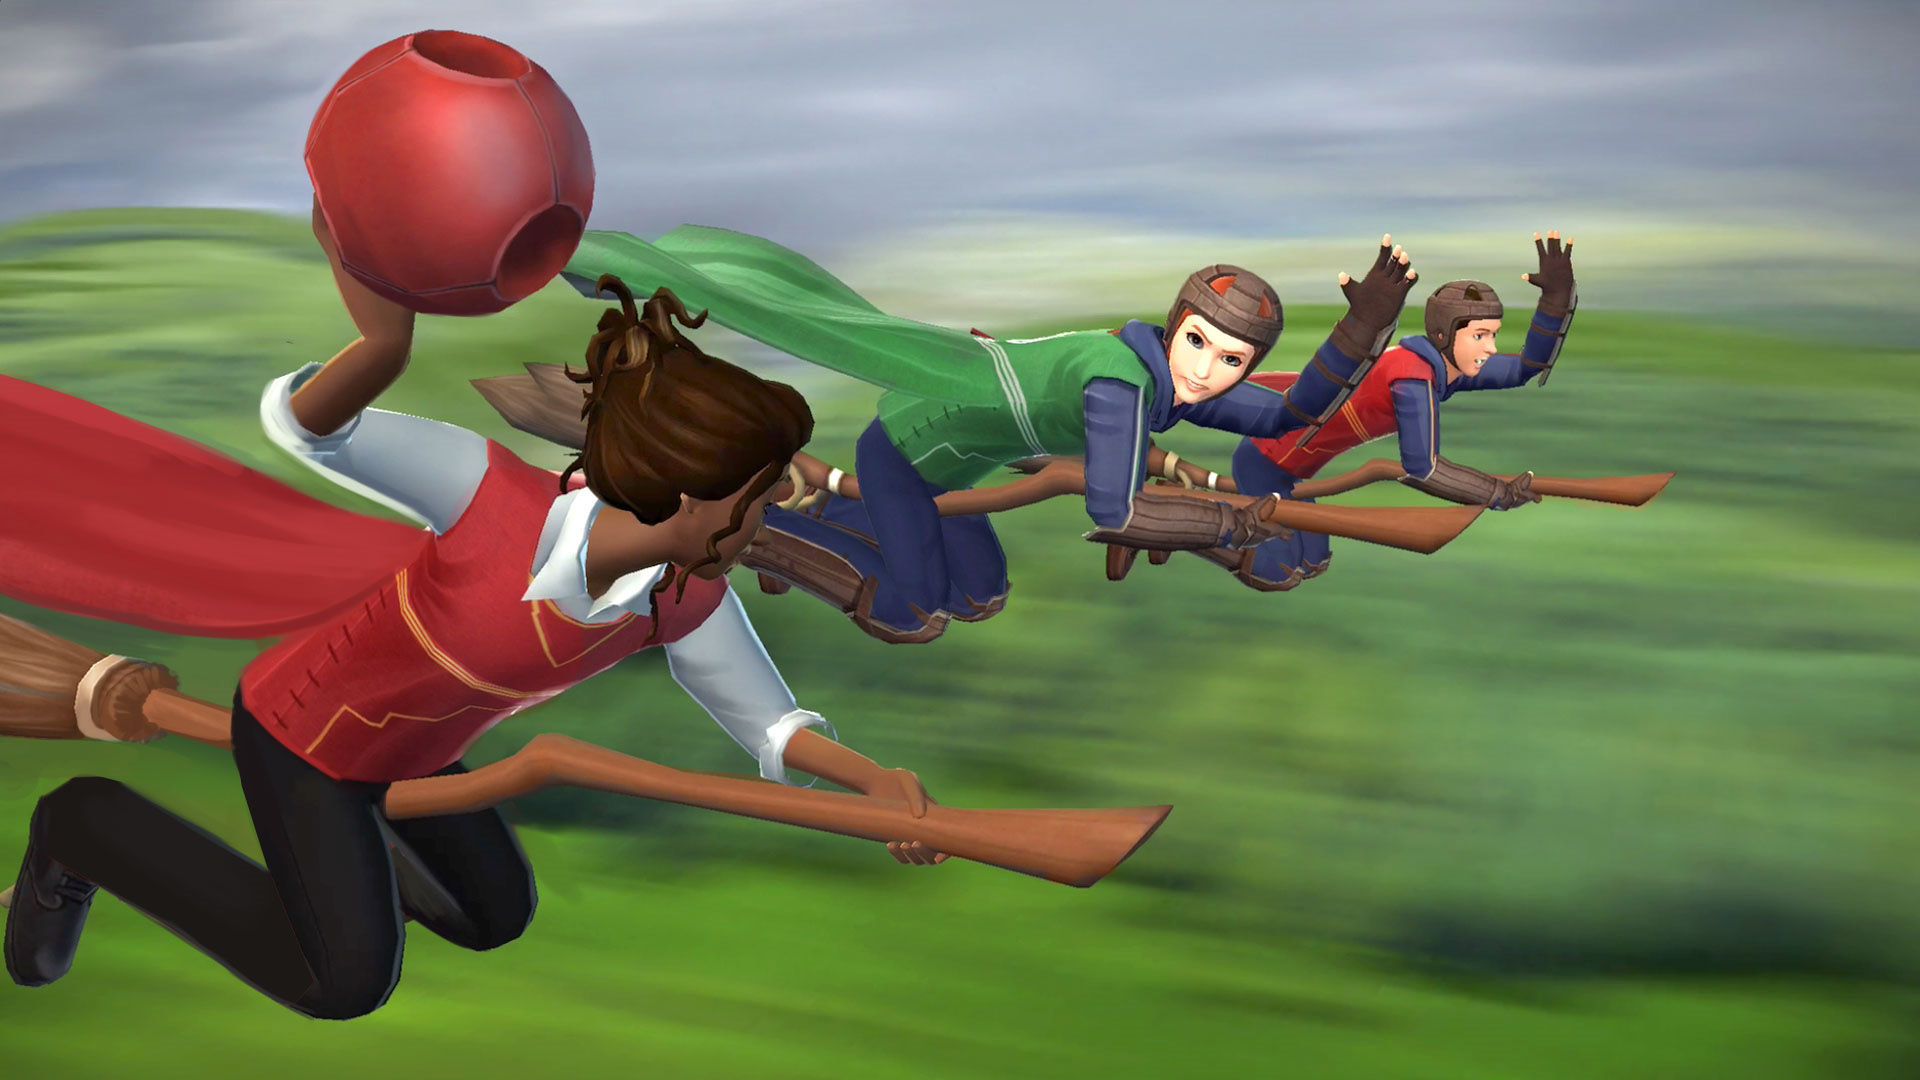 """A Chaser looks to pass the ball to a teammate in this new game image from """"Harry Potter: Hogwarts Mystery""""."""